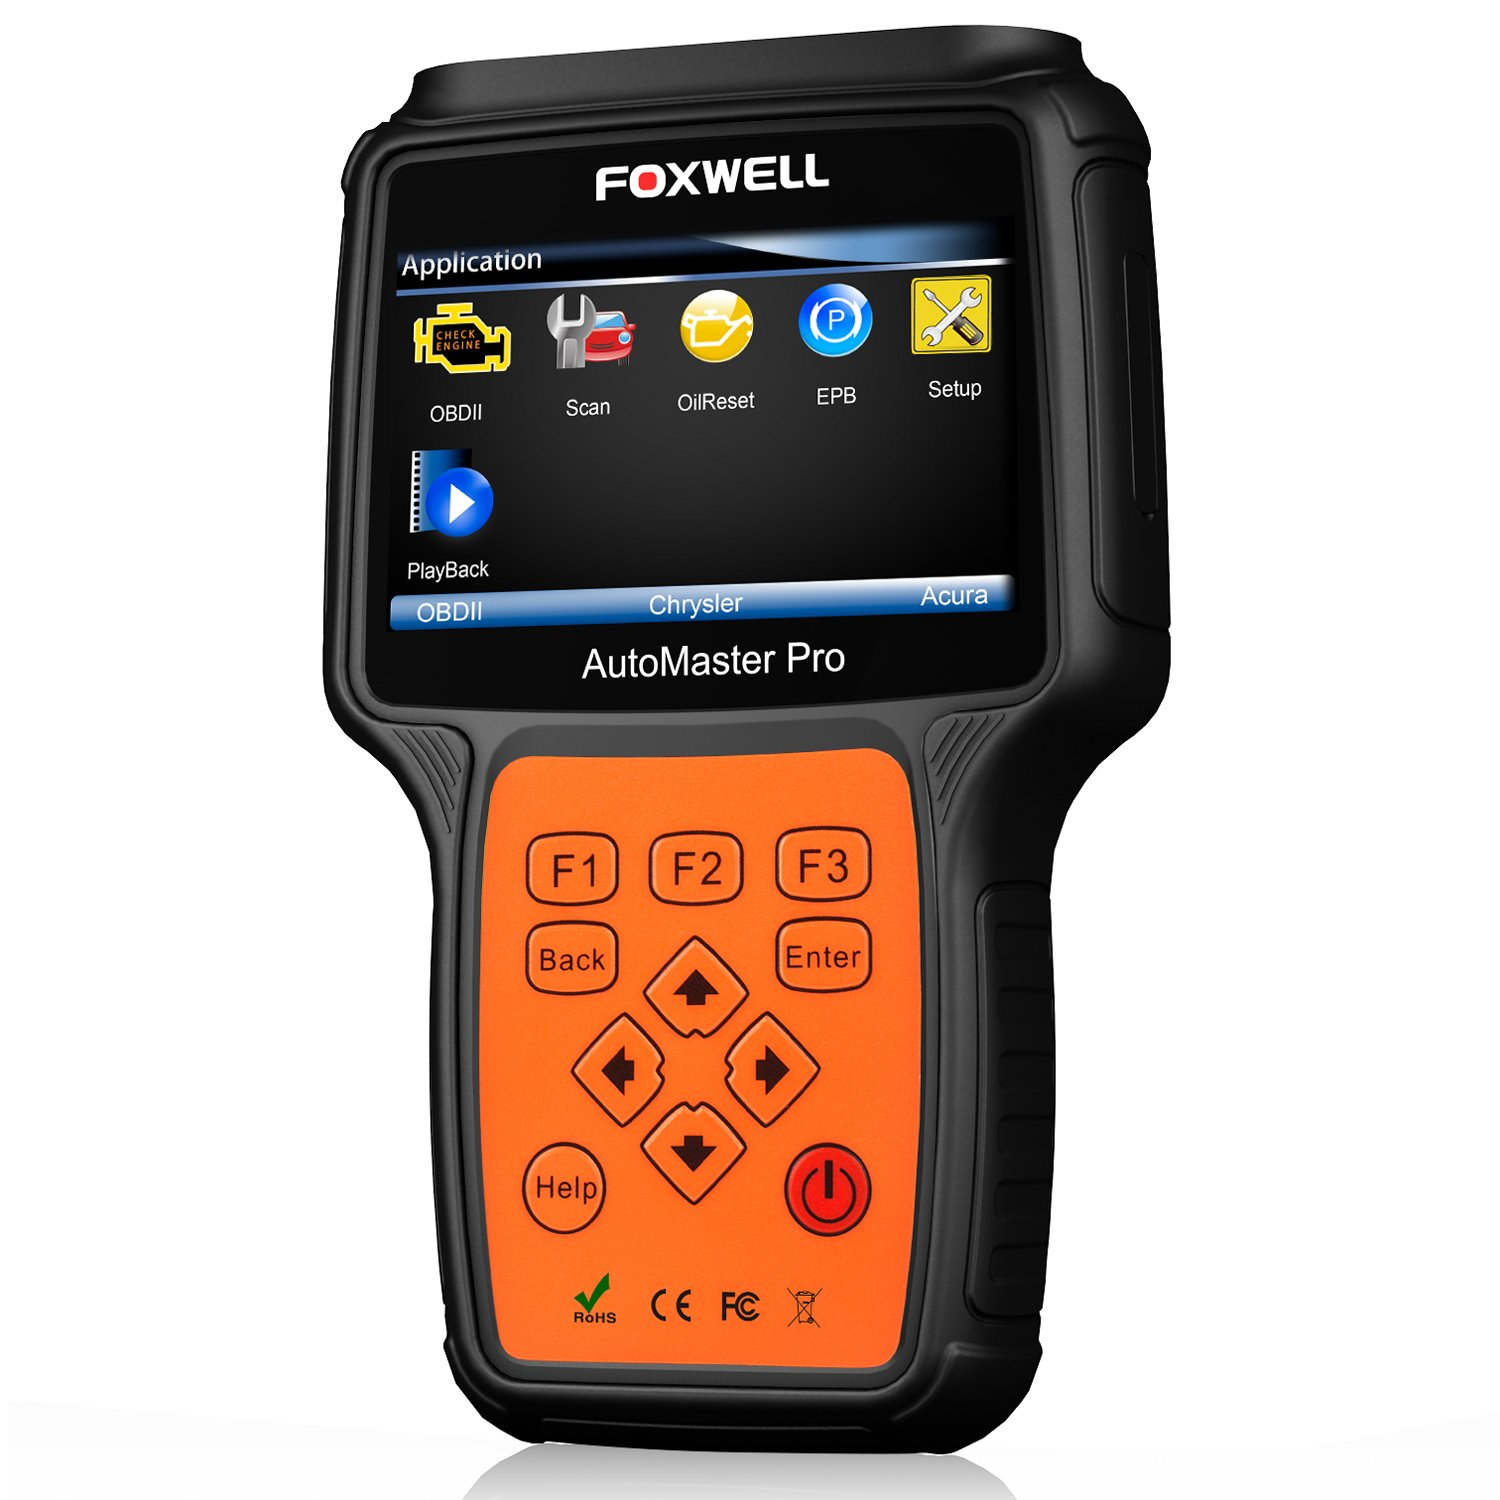 FOXWELL NT614 Automotive Scanner All Brand 4 System OBDII OBD2 Code Readers Check Engine ABS Airbag Transmission + EPB Oil Reset Car Diagnostic Tool by FOXWELL (Image #1)